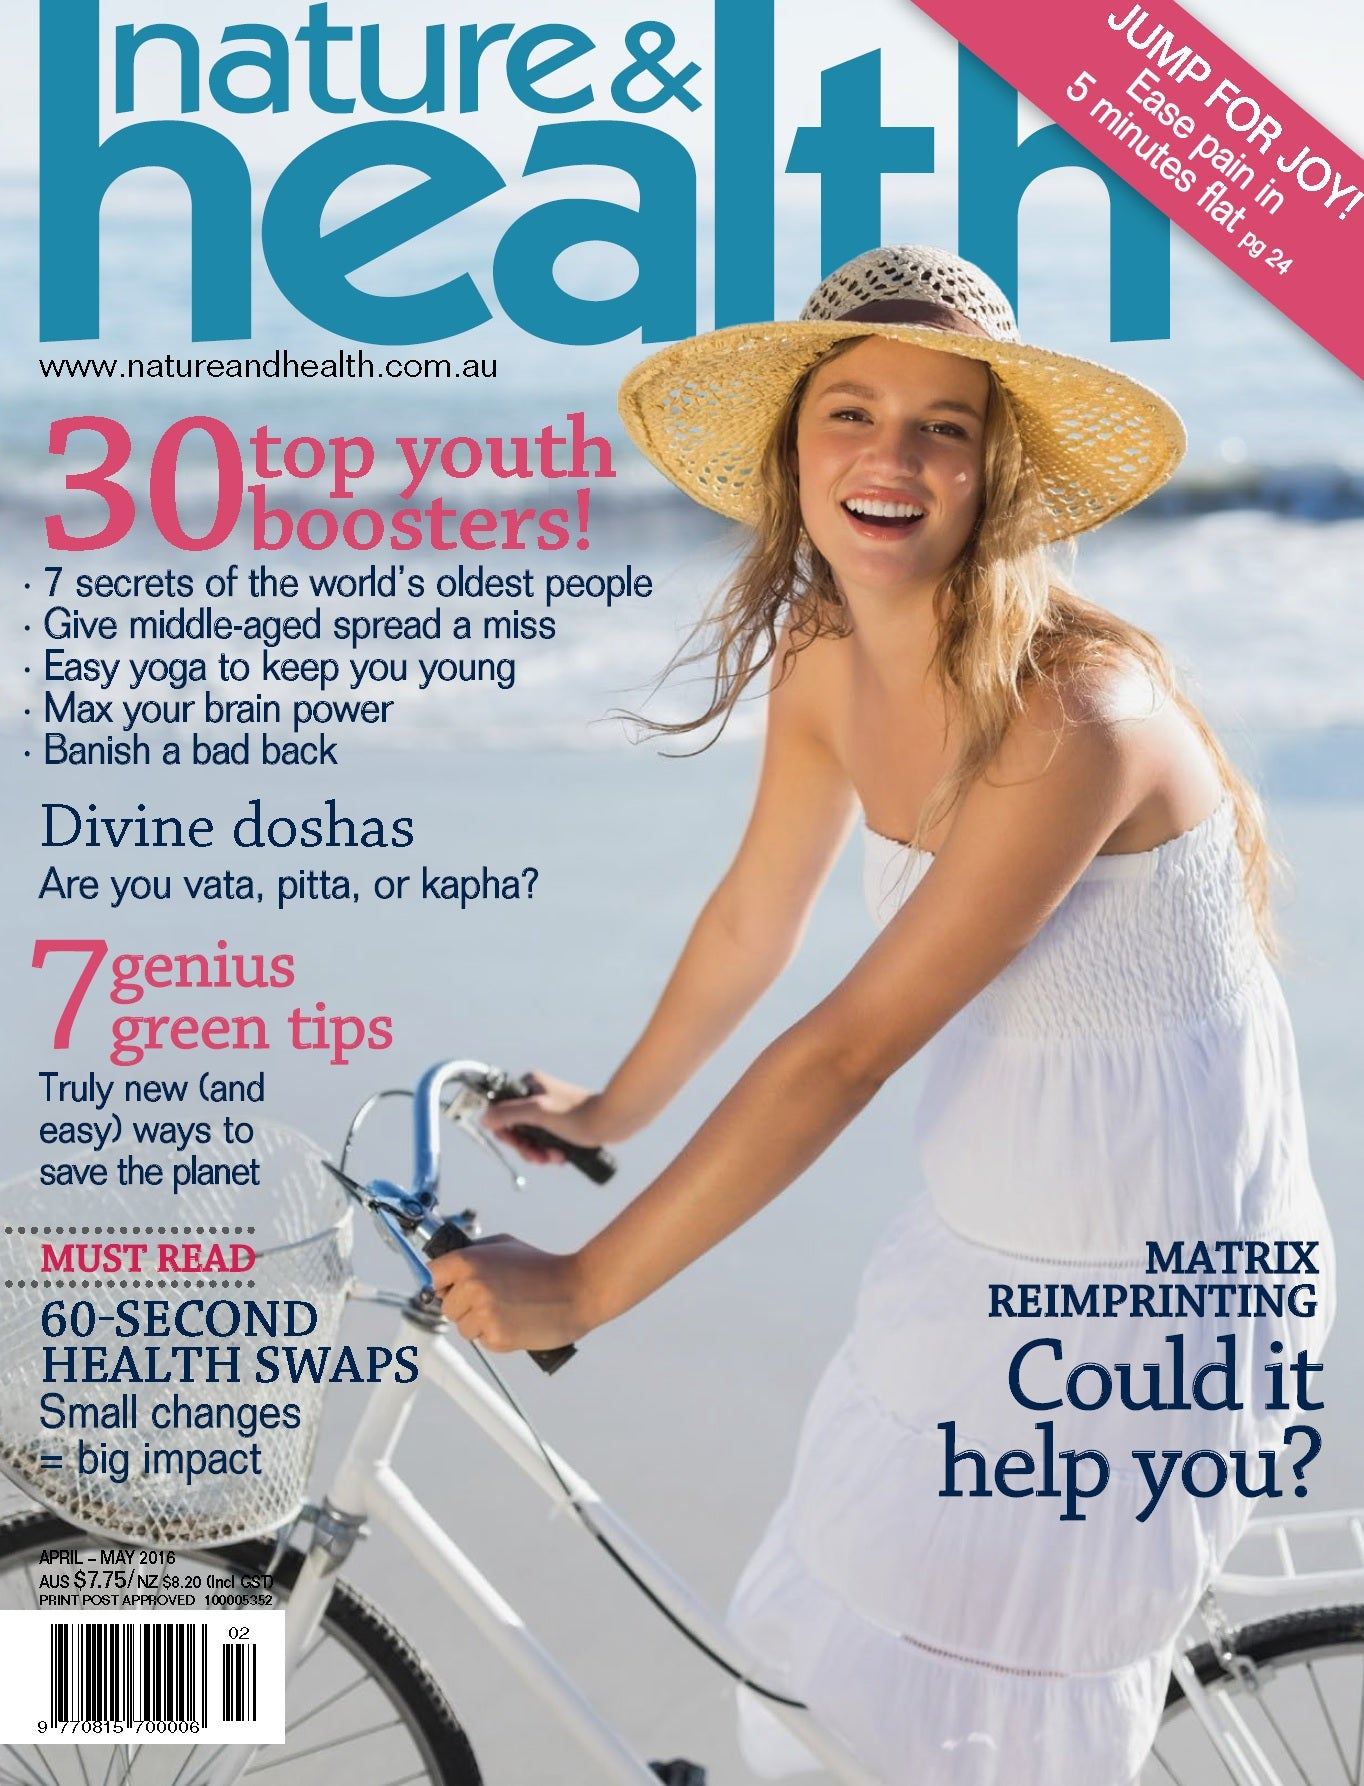 Hanako Therapies interview featuring in Nature & Health Magazine